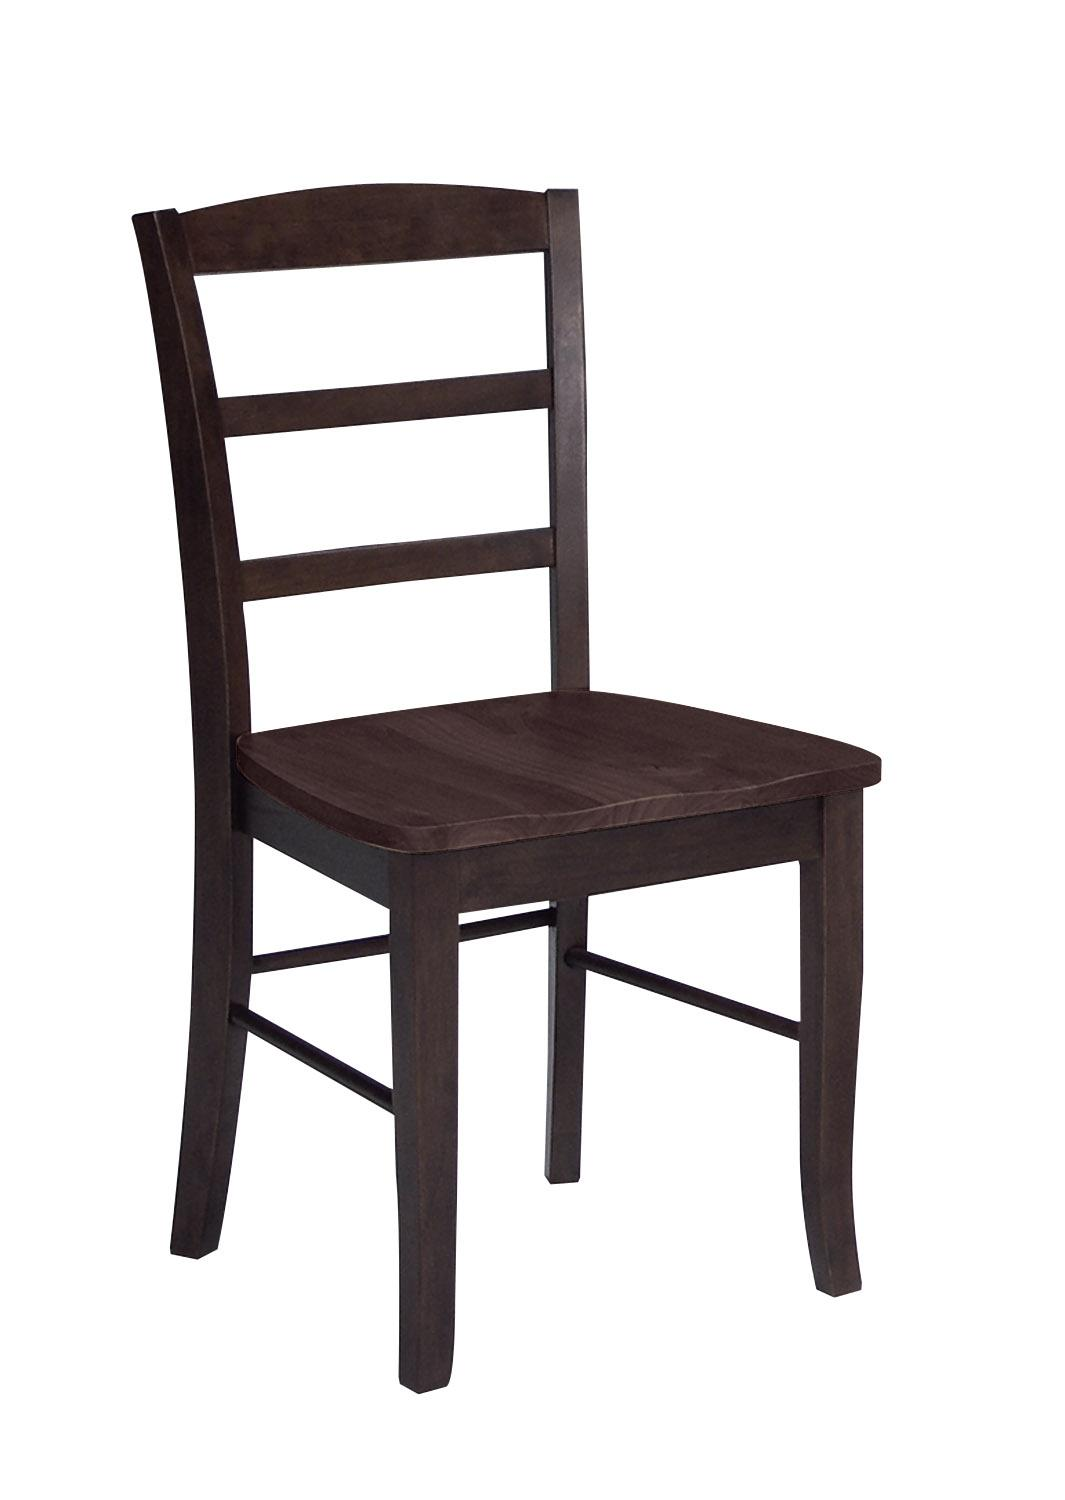 John Thomas Dining Essentials Ladderback Side Chair - Item Number: C15-2